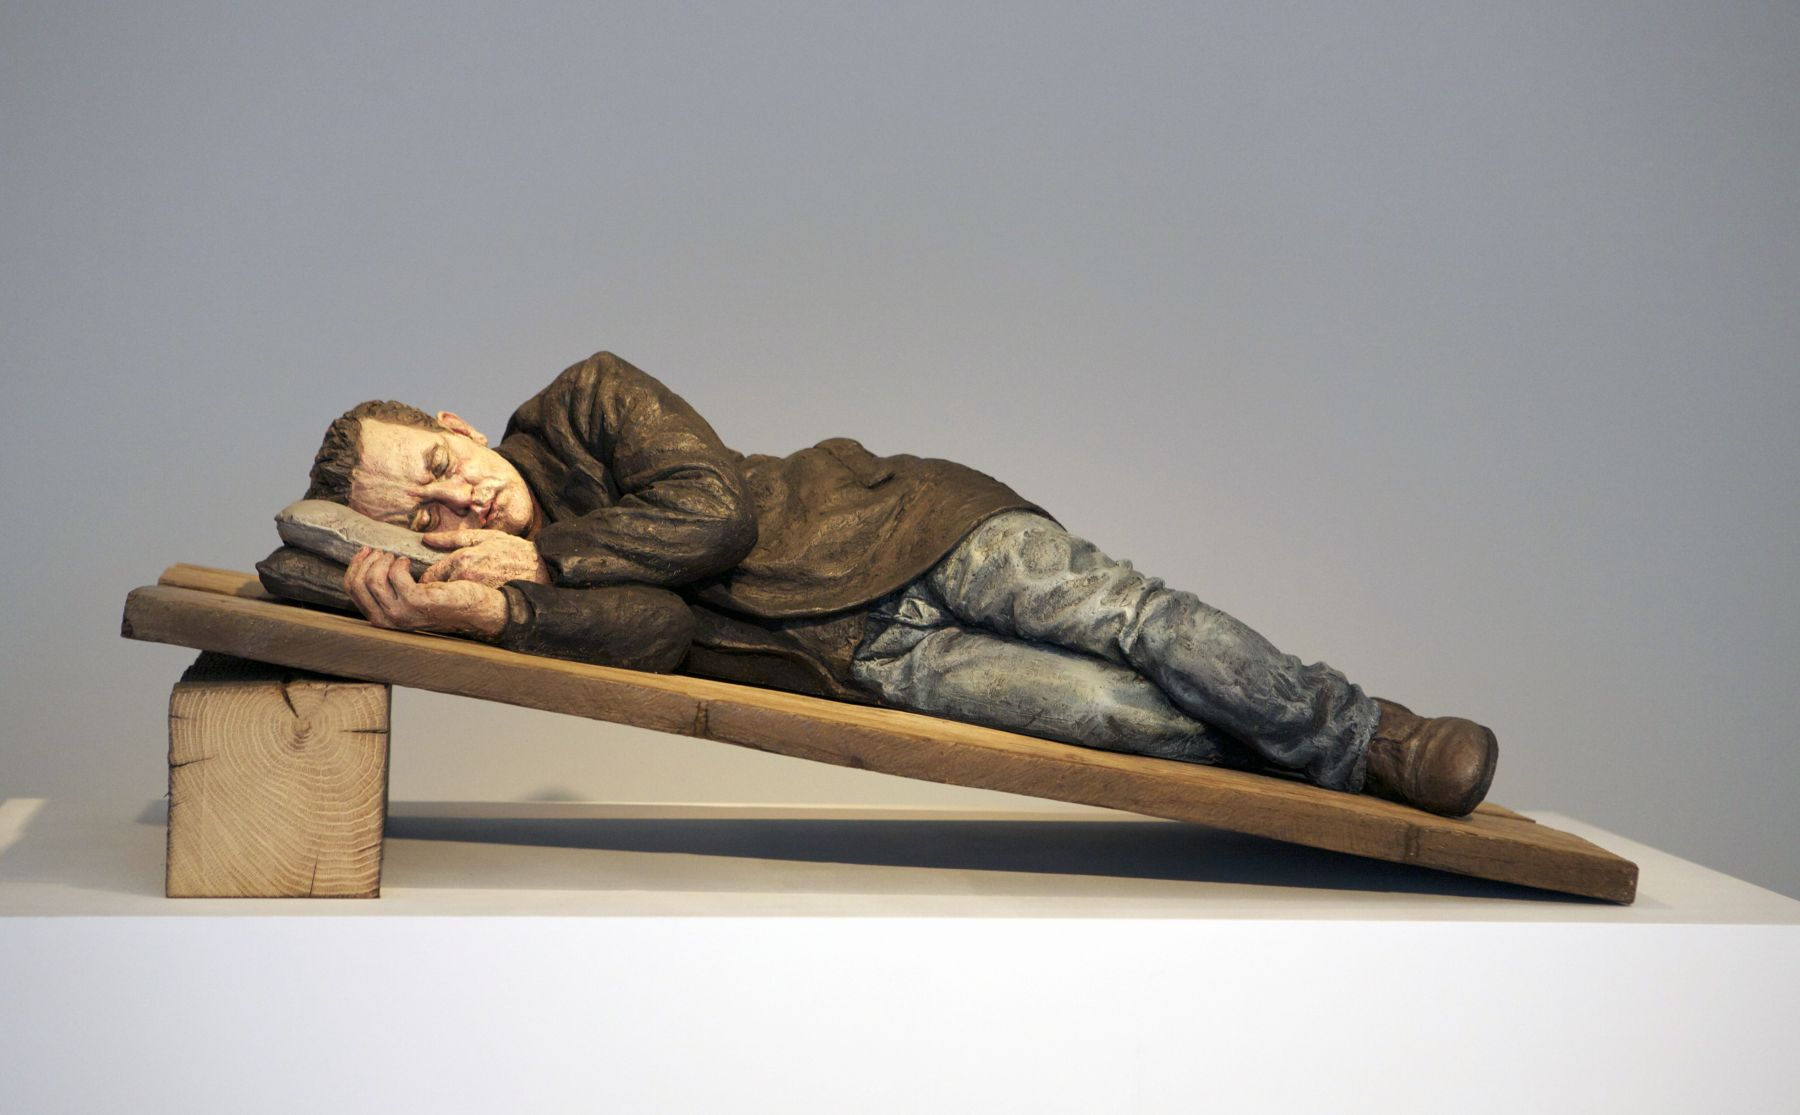 sean henry, Ramp, 2012, bronze, oil paint, wood, 13 x 35 x 17 inches, Edition of 6